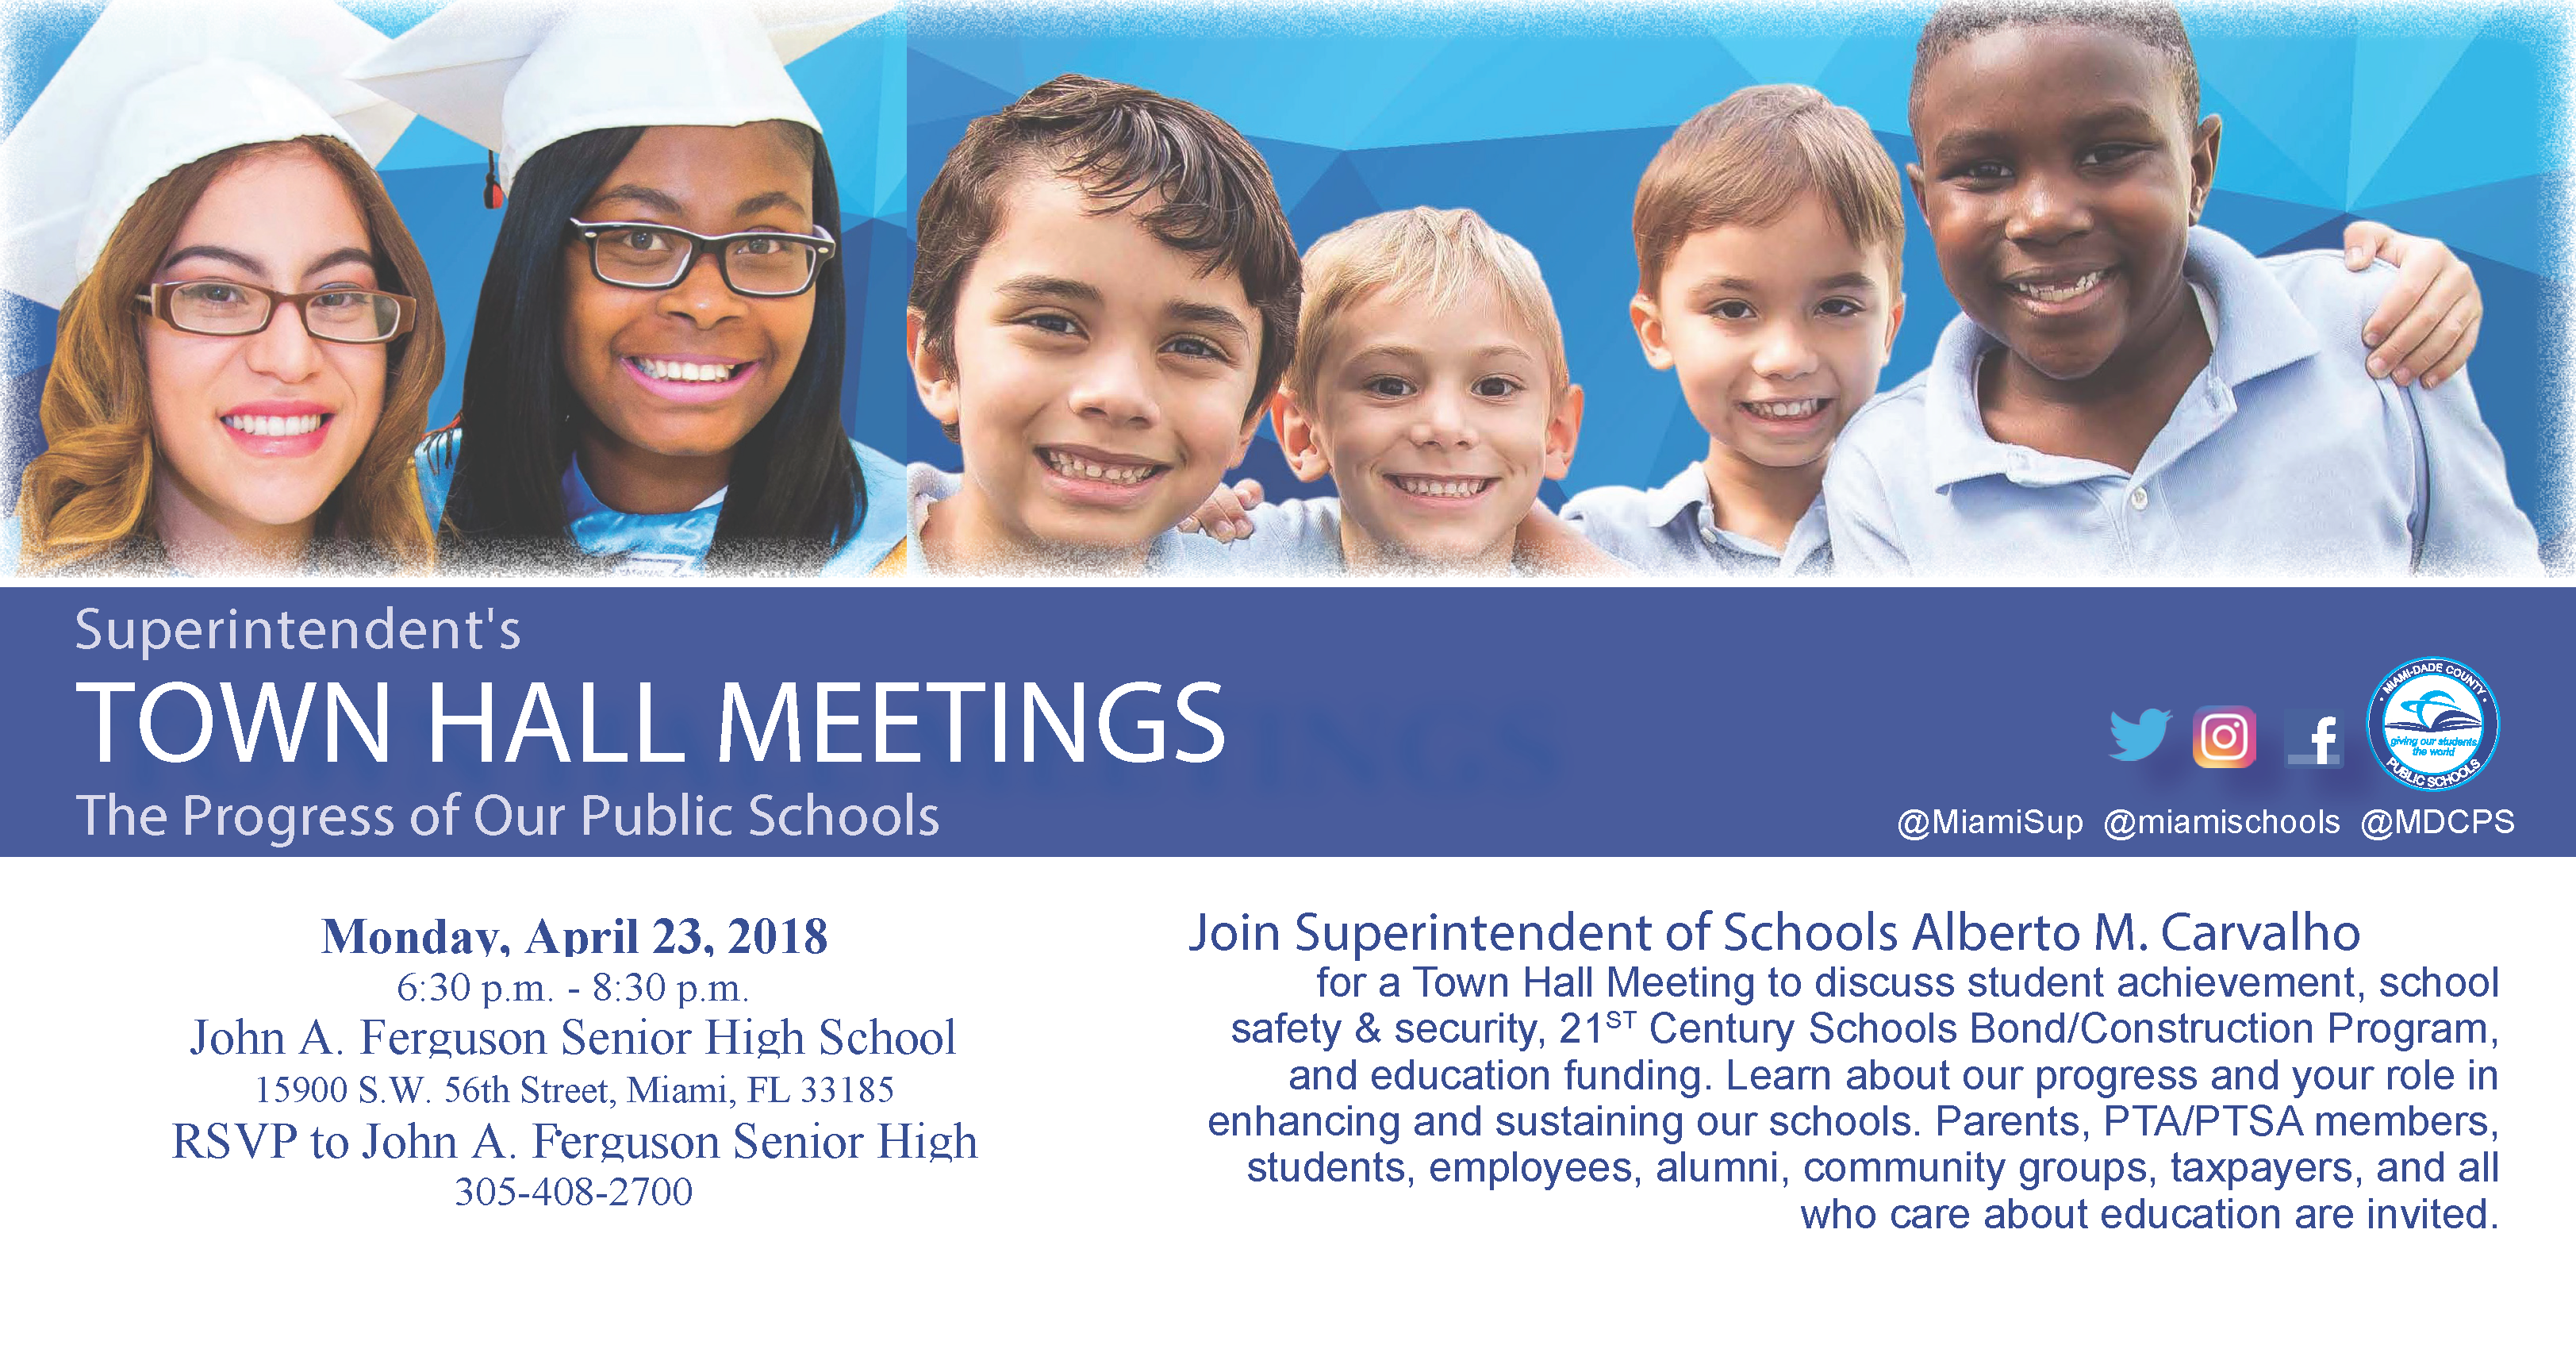 Superintendent's Town Hall Meeting - The Progress of Our Public Schools @ John A. Ferguson Senior High School | Miami | Florida | United States